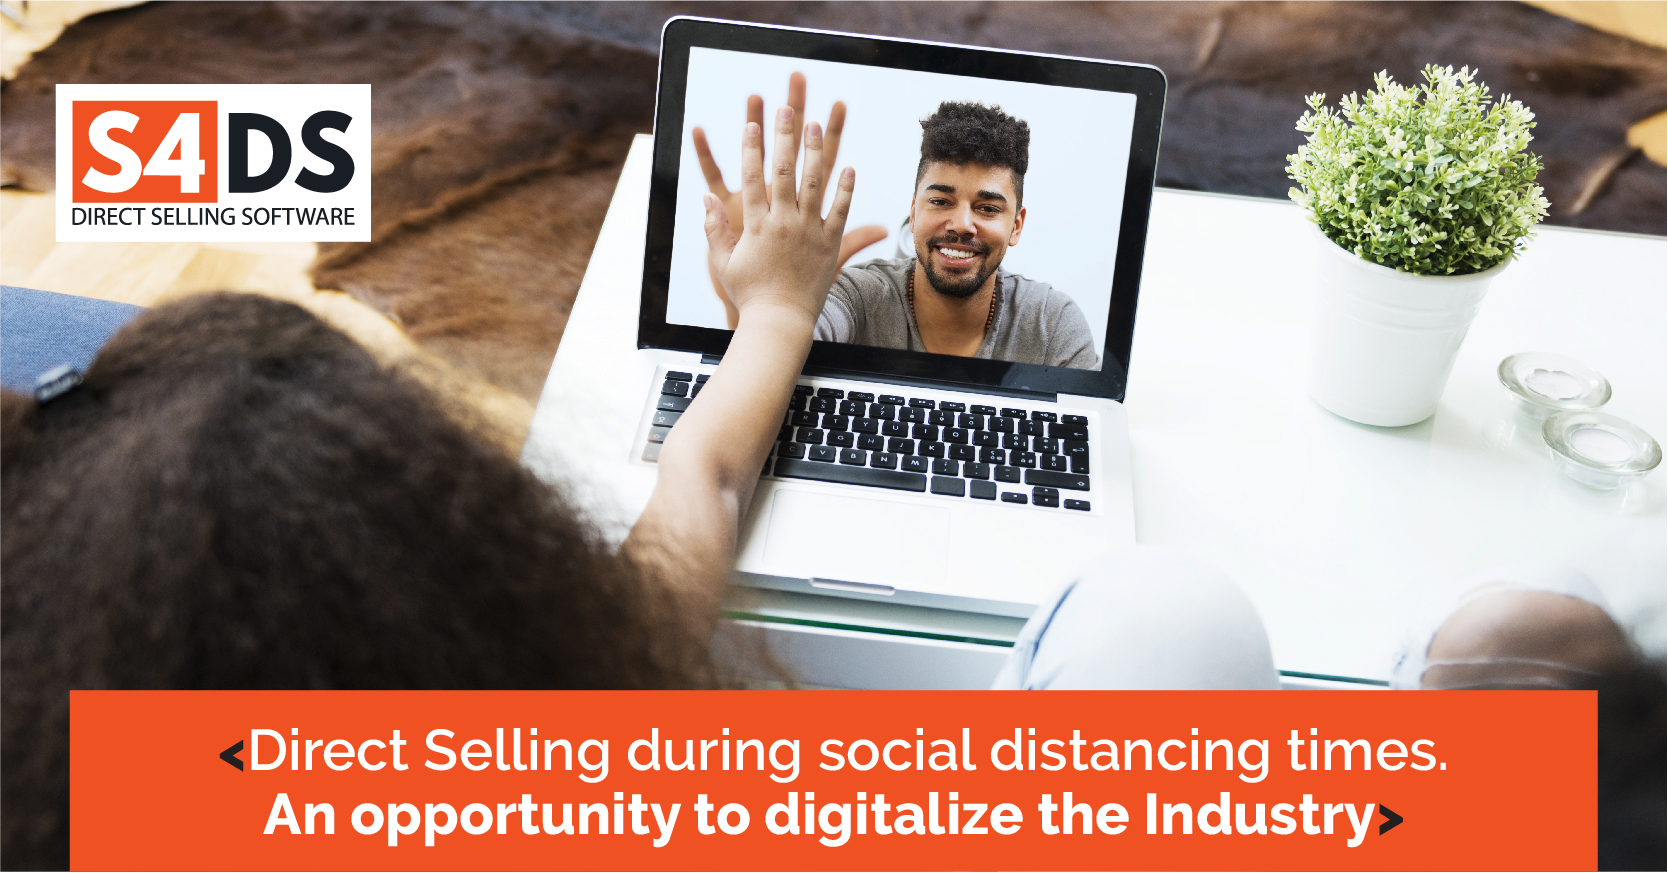 Direct Selling during social distancing times